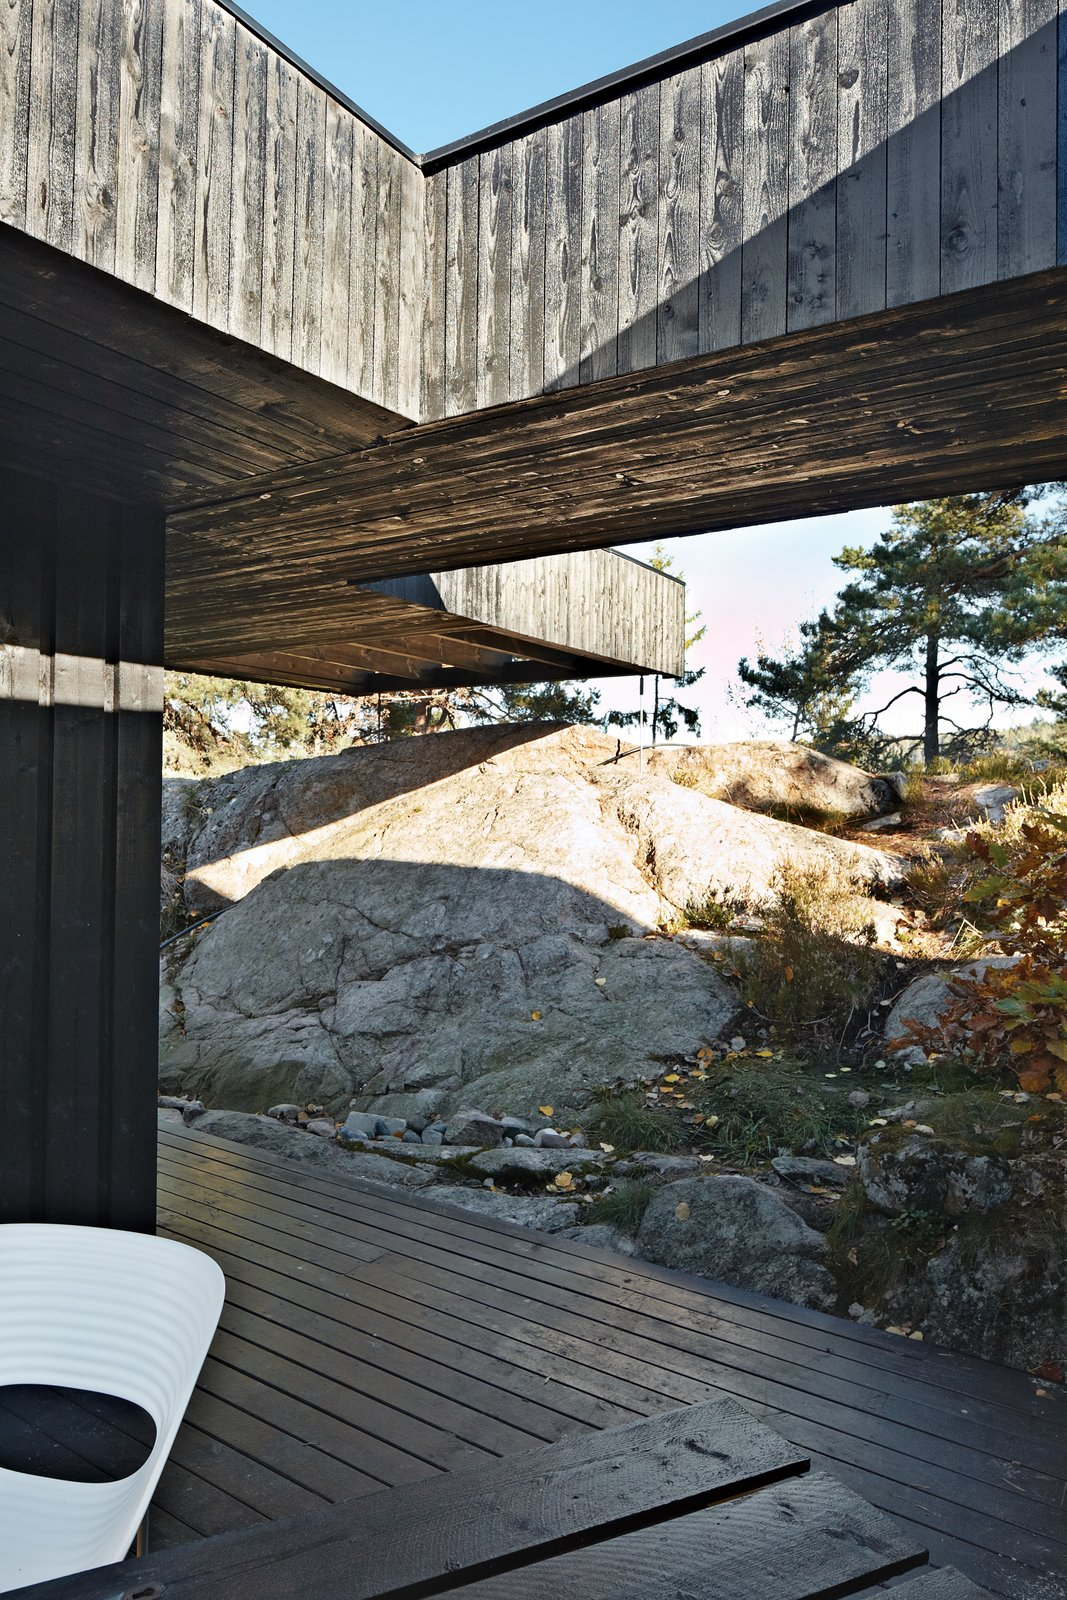 Outdoor, Boulders, Large Patio, Porch, Deck, Wood Patio, Porch, Deck, and Trees A section of the roof reaches over a rock outcropping—a detail that visually connects the house to the landscape and offers a handy way to climb up to the roof deck without using a ladder.  Cabin from 430 Cabin